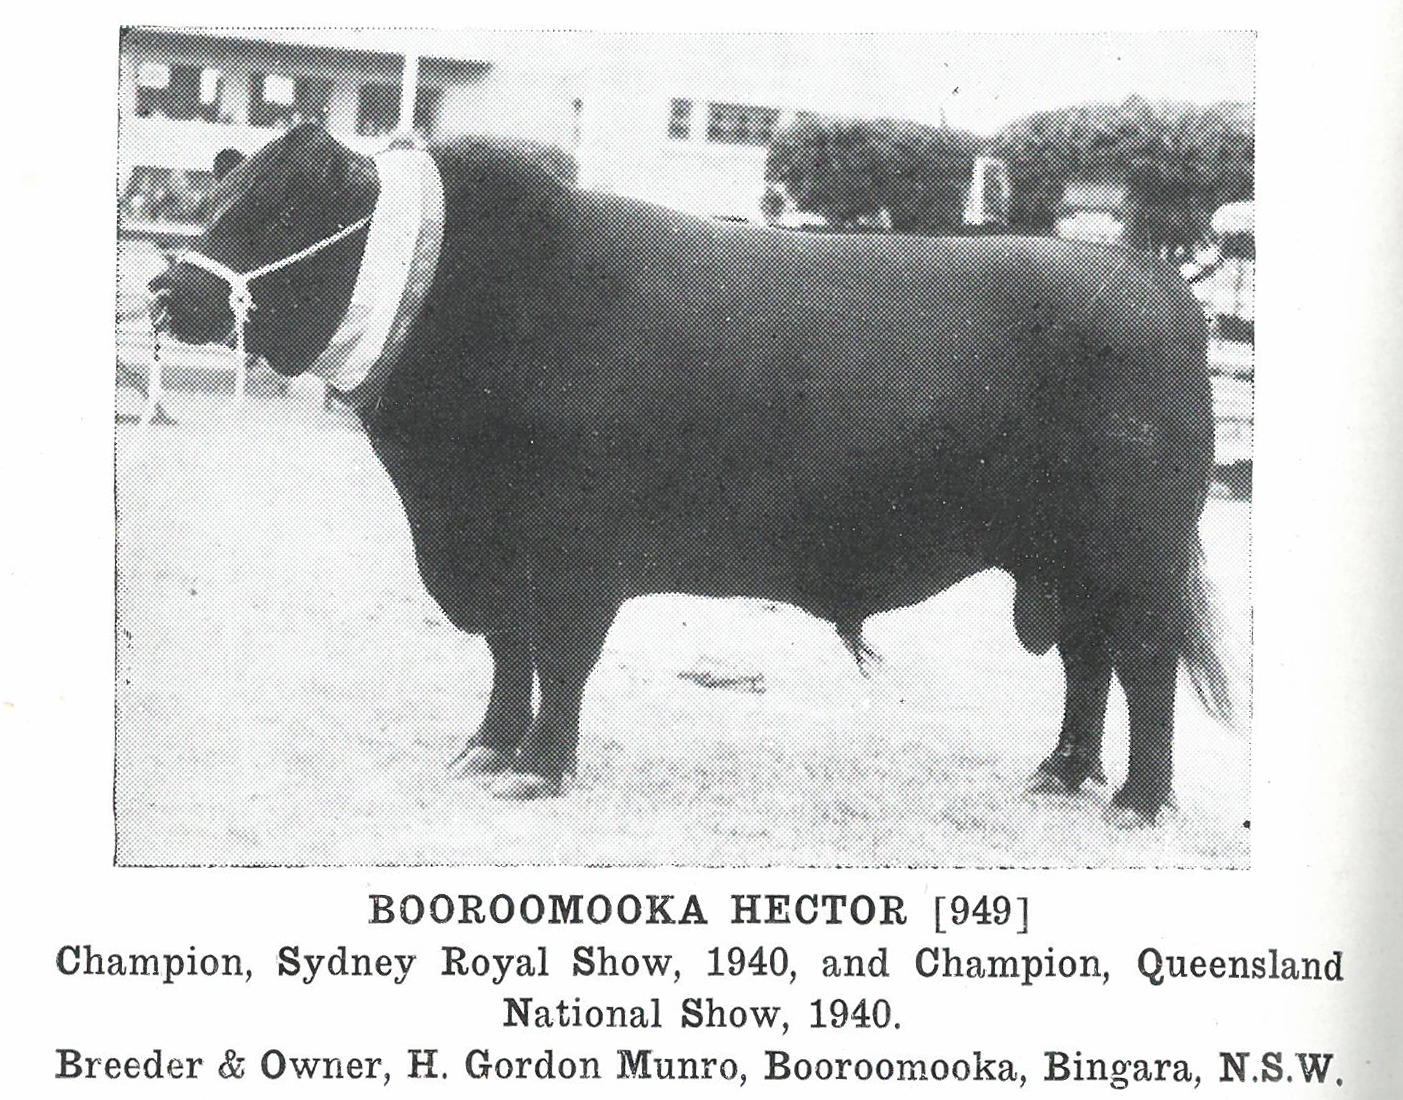 Booroomooka Hector